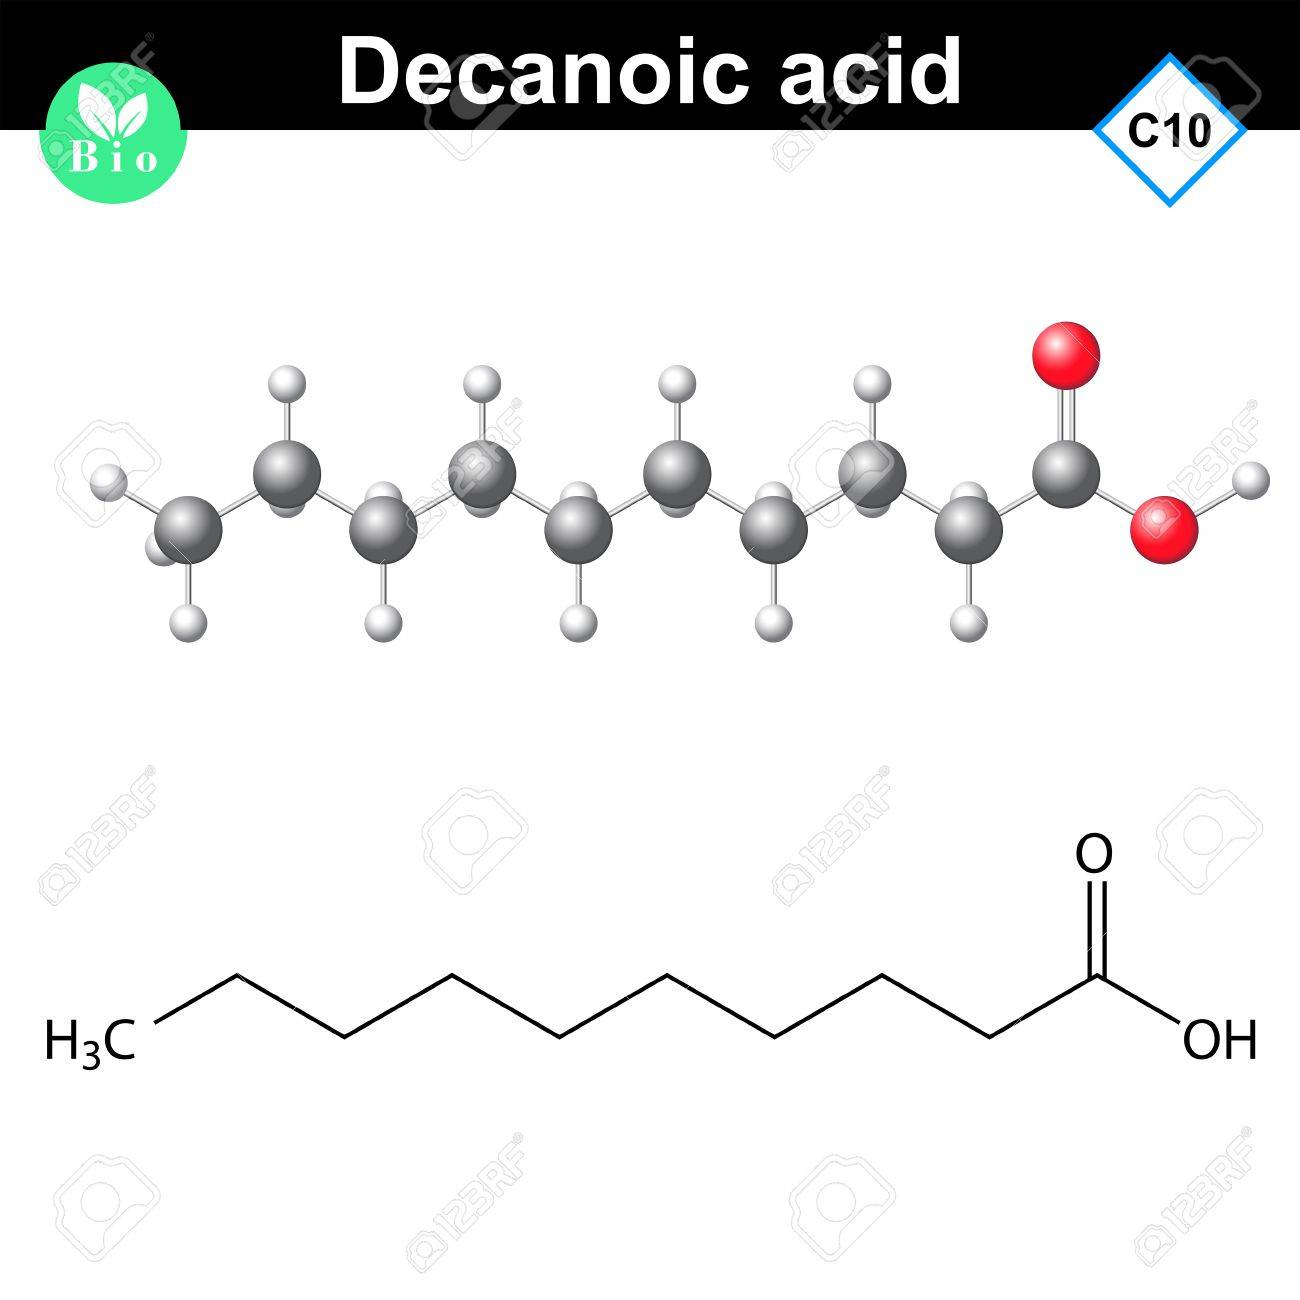 Decanoic acid atomic structure, 2d and 3d vector models, isolated